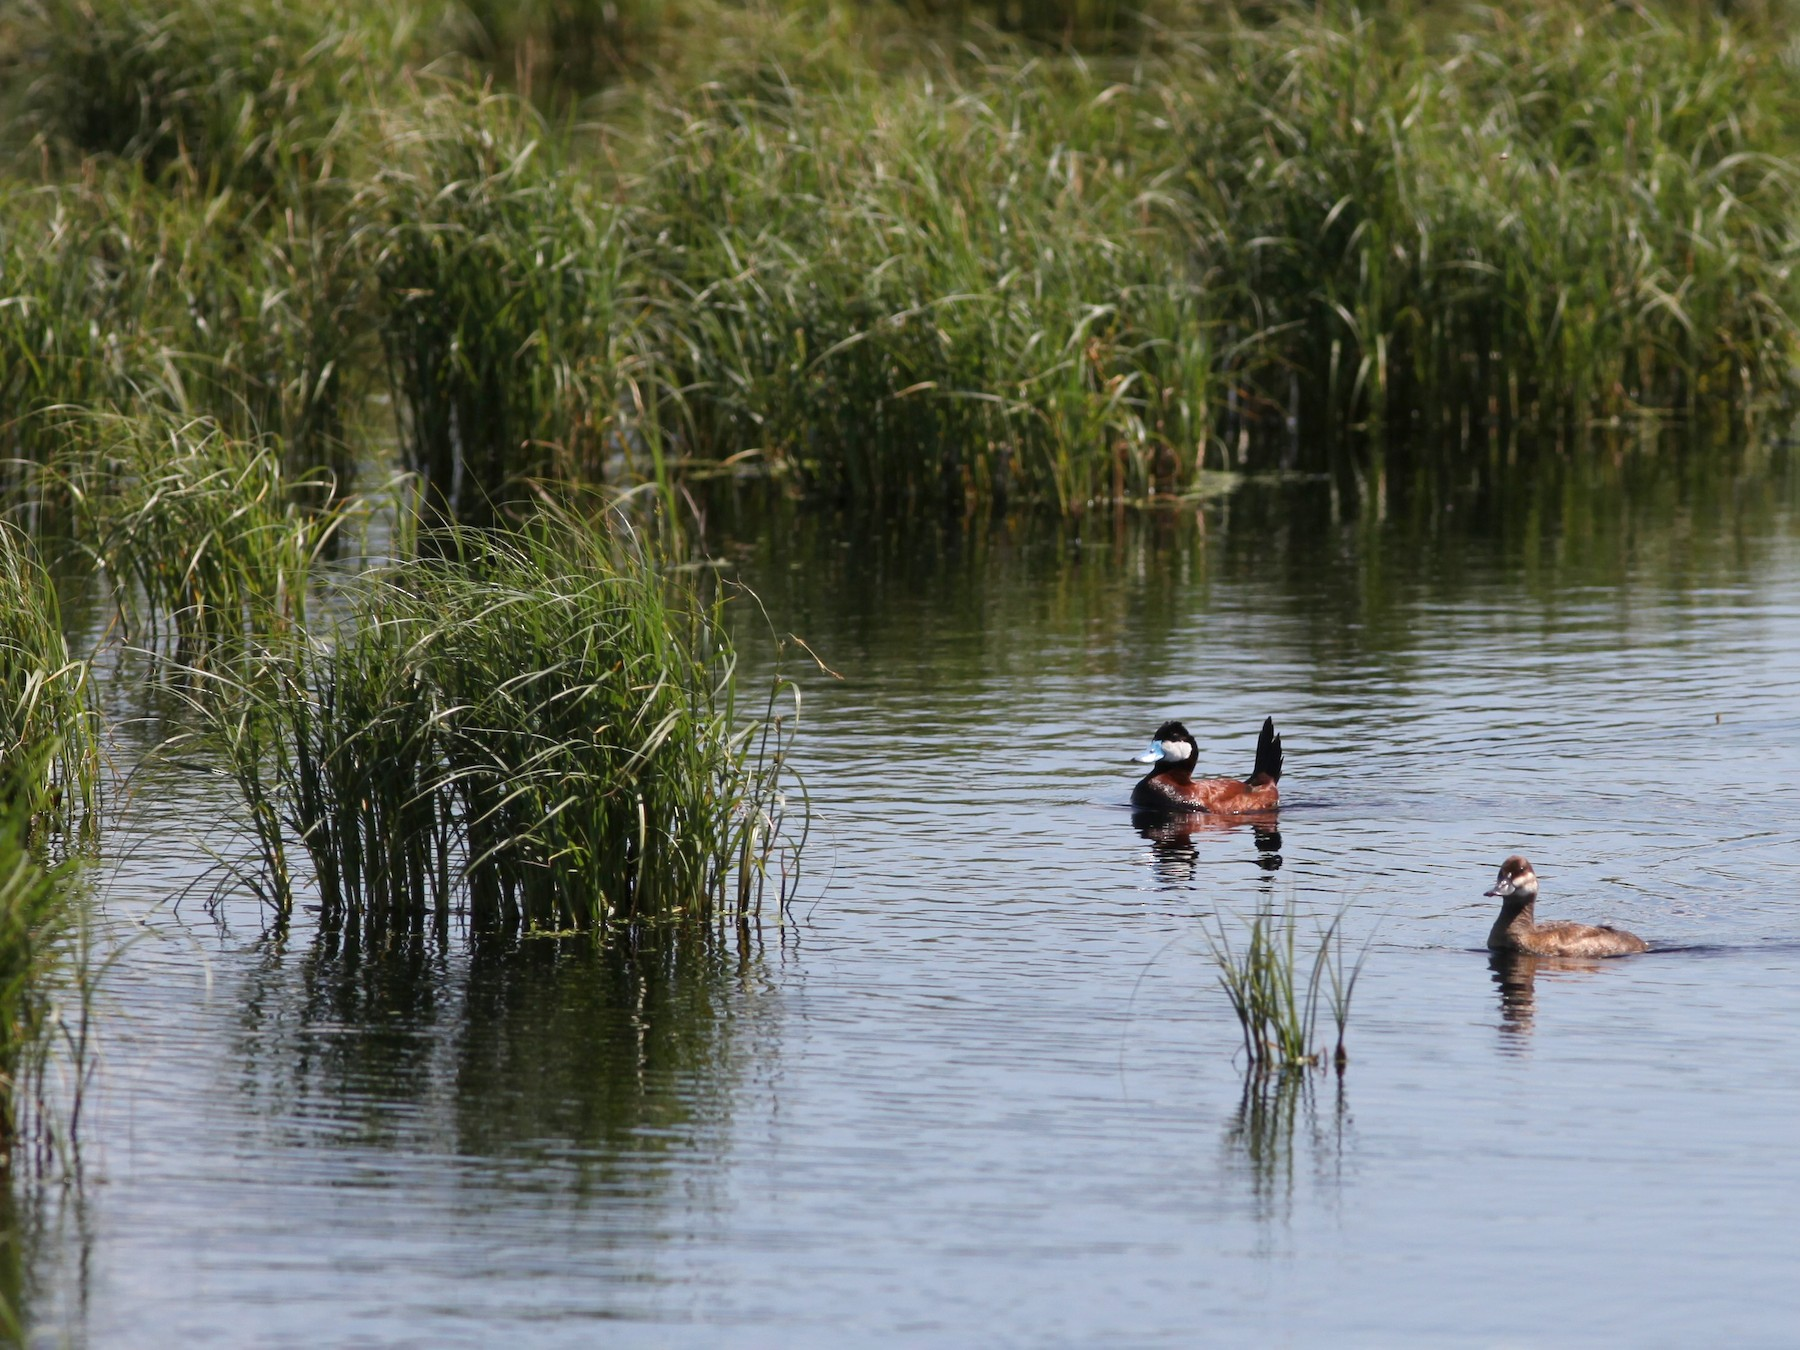 Ruddy Duck - Irene Crosland